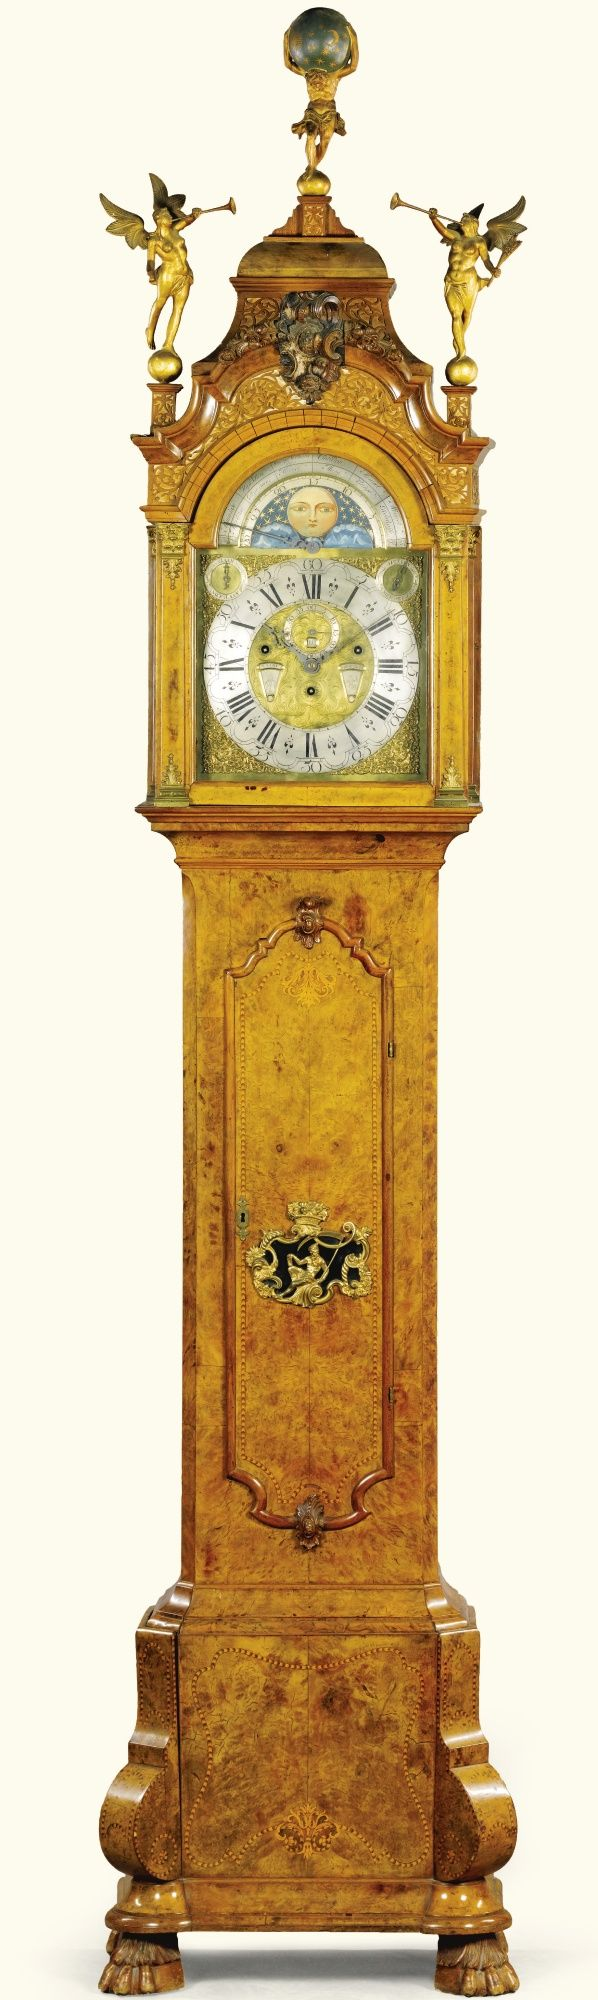 97 Best Grandfather Clocks Images On Pinterest Antique Clocks